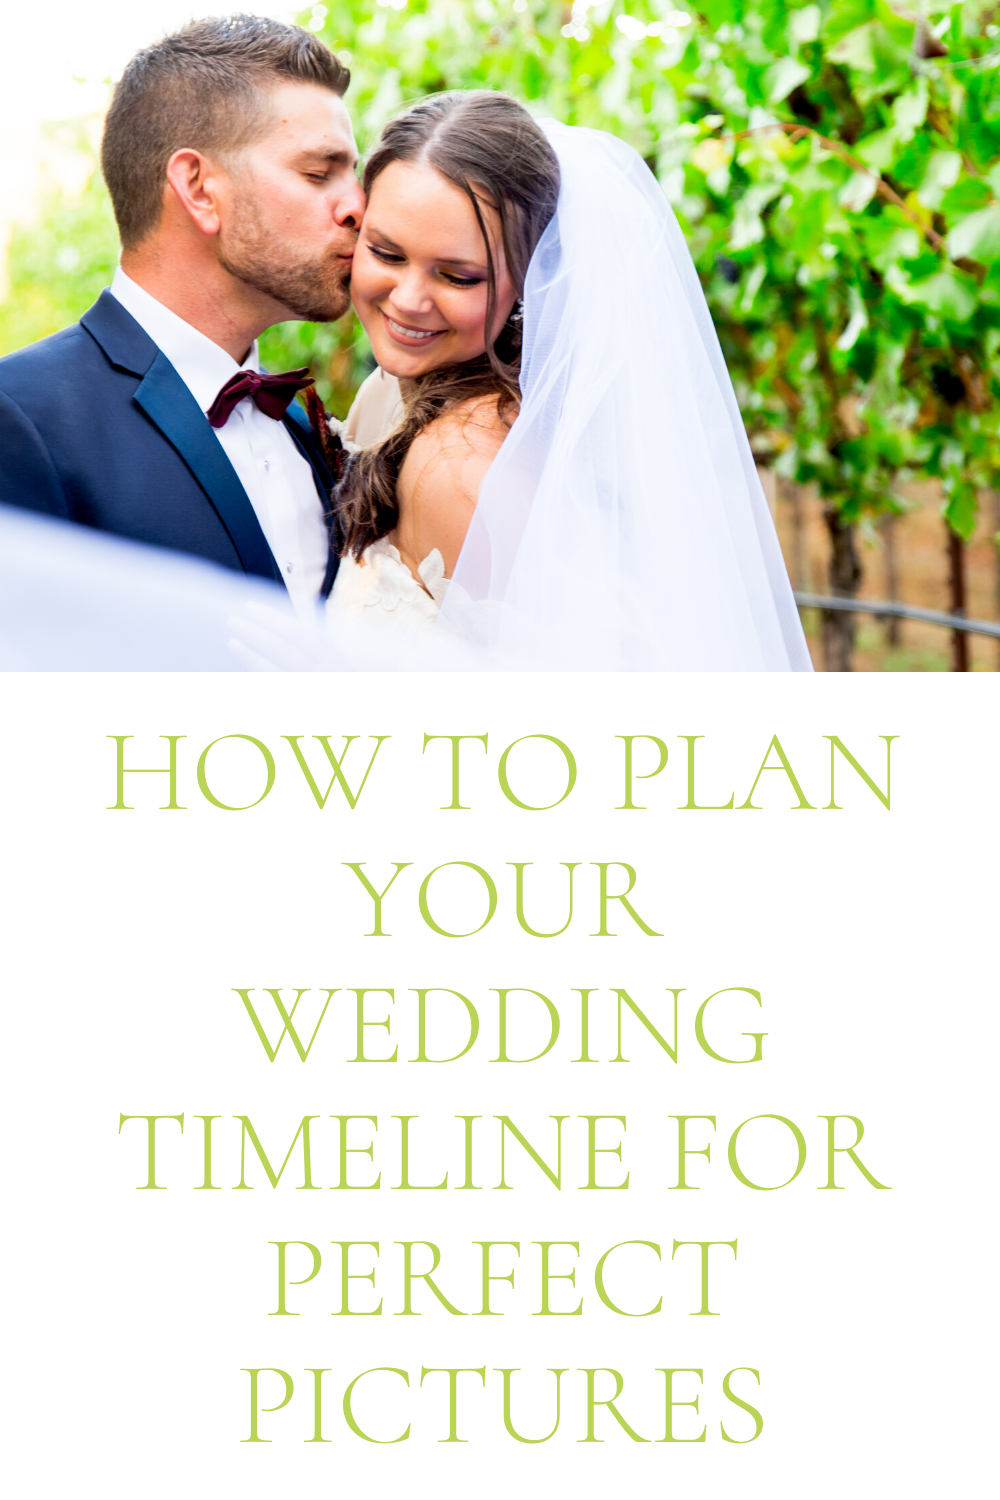 Day Of Wedding Timeline For Perfect Pictures In 2020 Wedding Day Timeline Wedding Timeline Wedding First Look